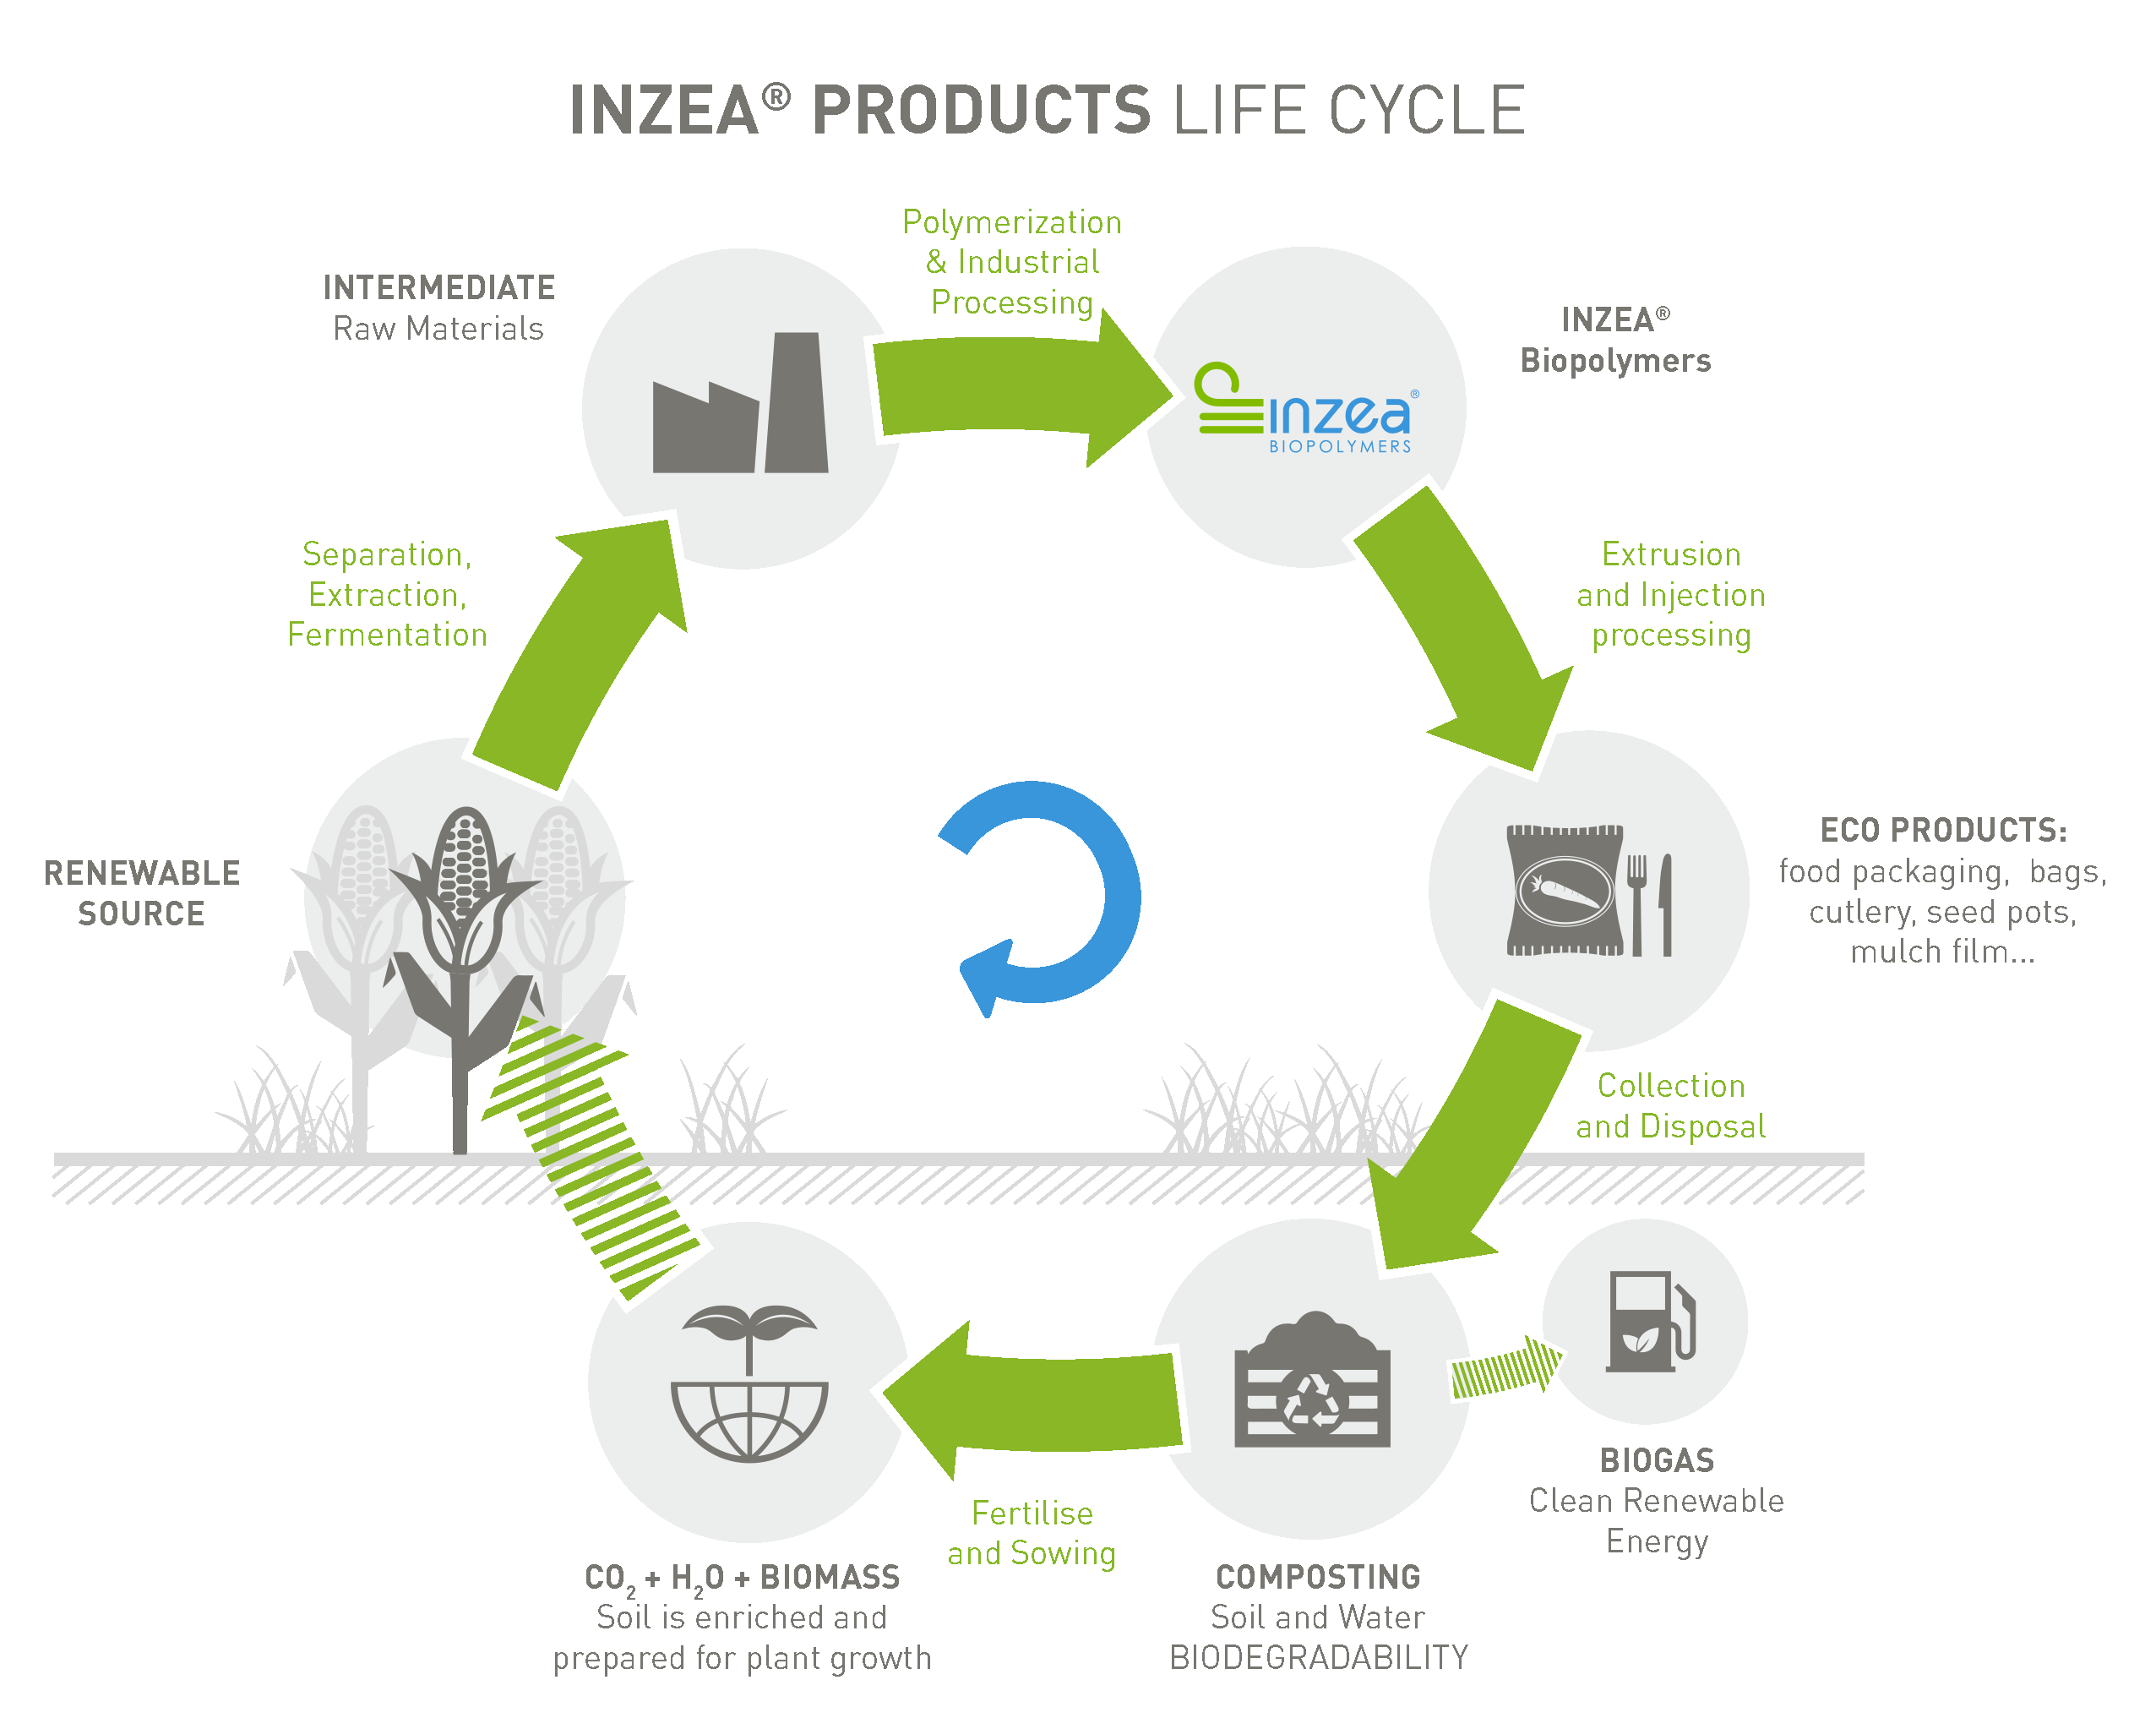 INZEA®biopolymers life cycle industrial & home composting.